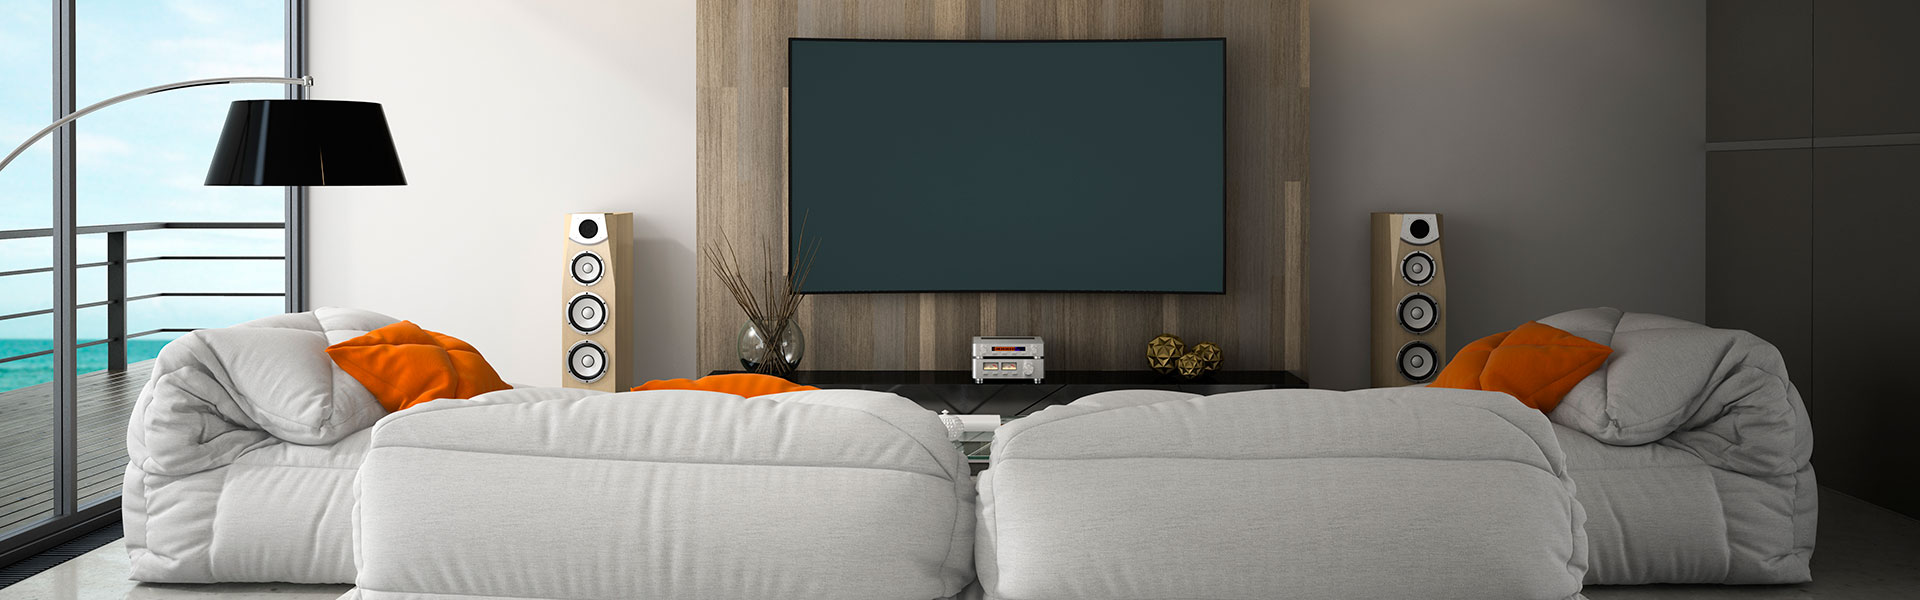 <h3>10 Signs You Need a Home Theatre Installation in Sydney</h3>